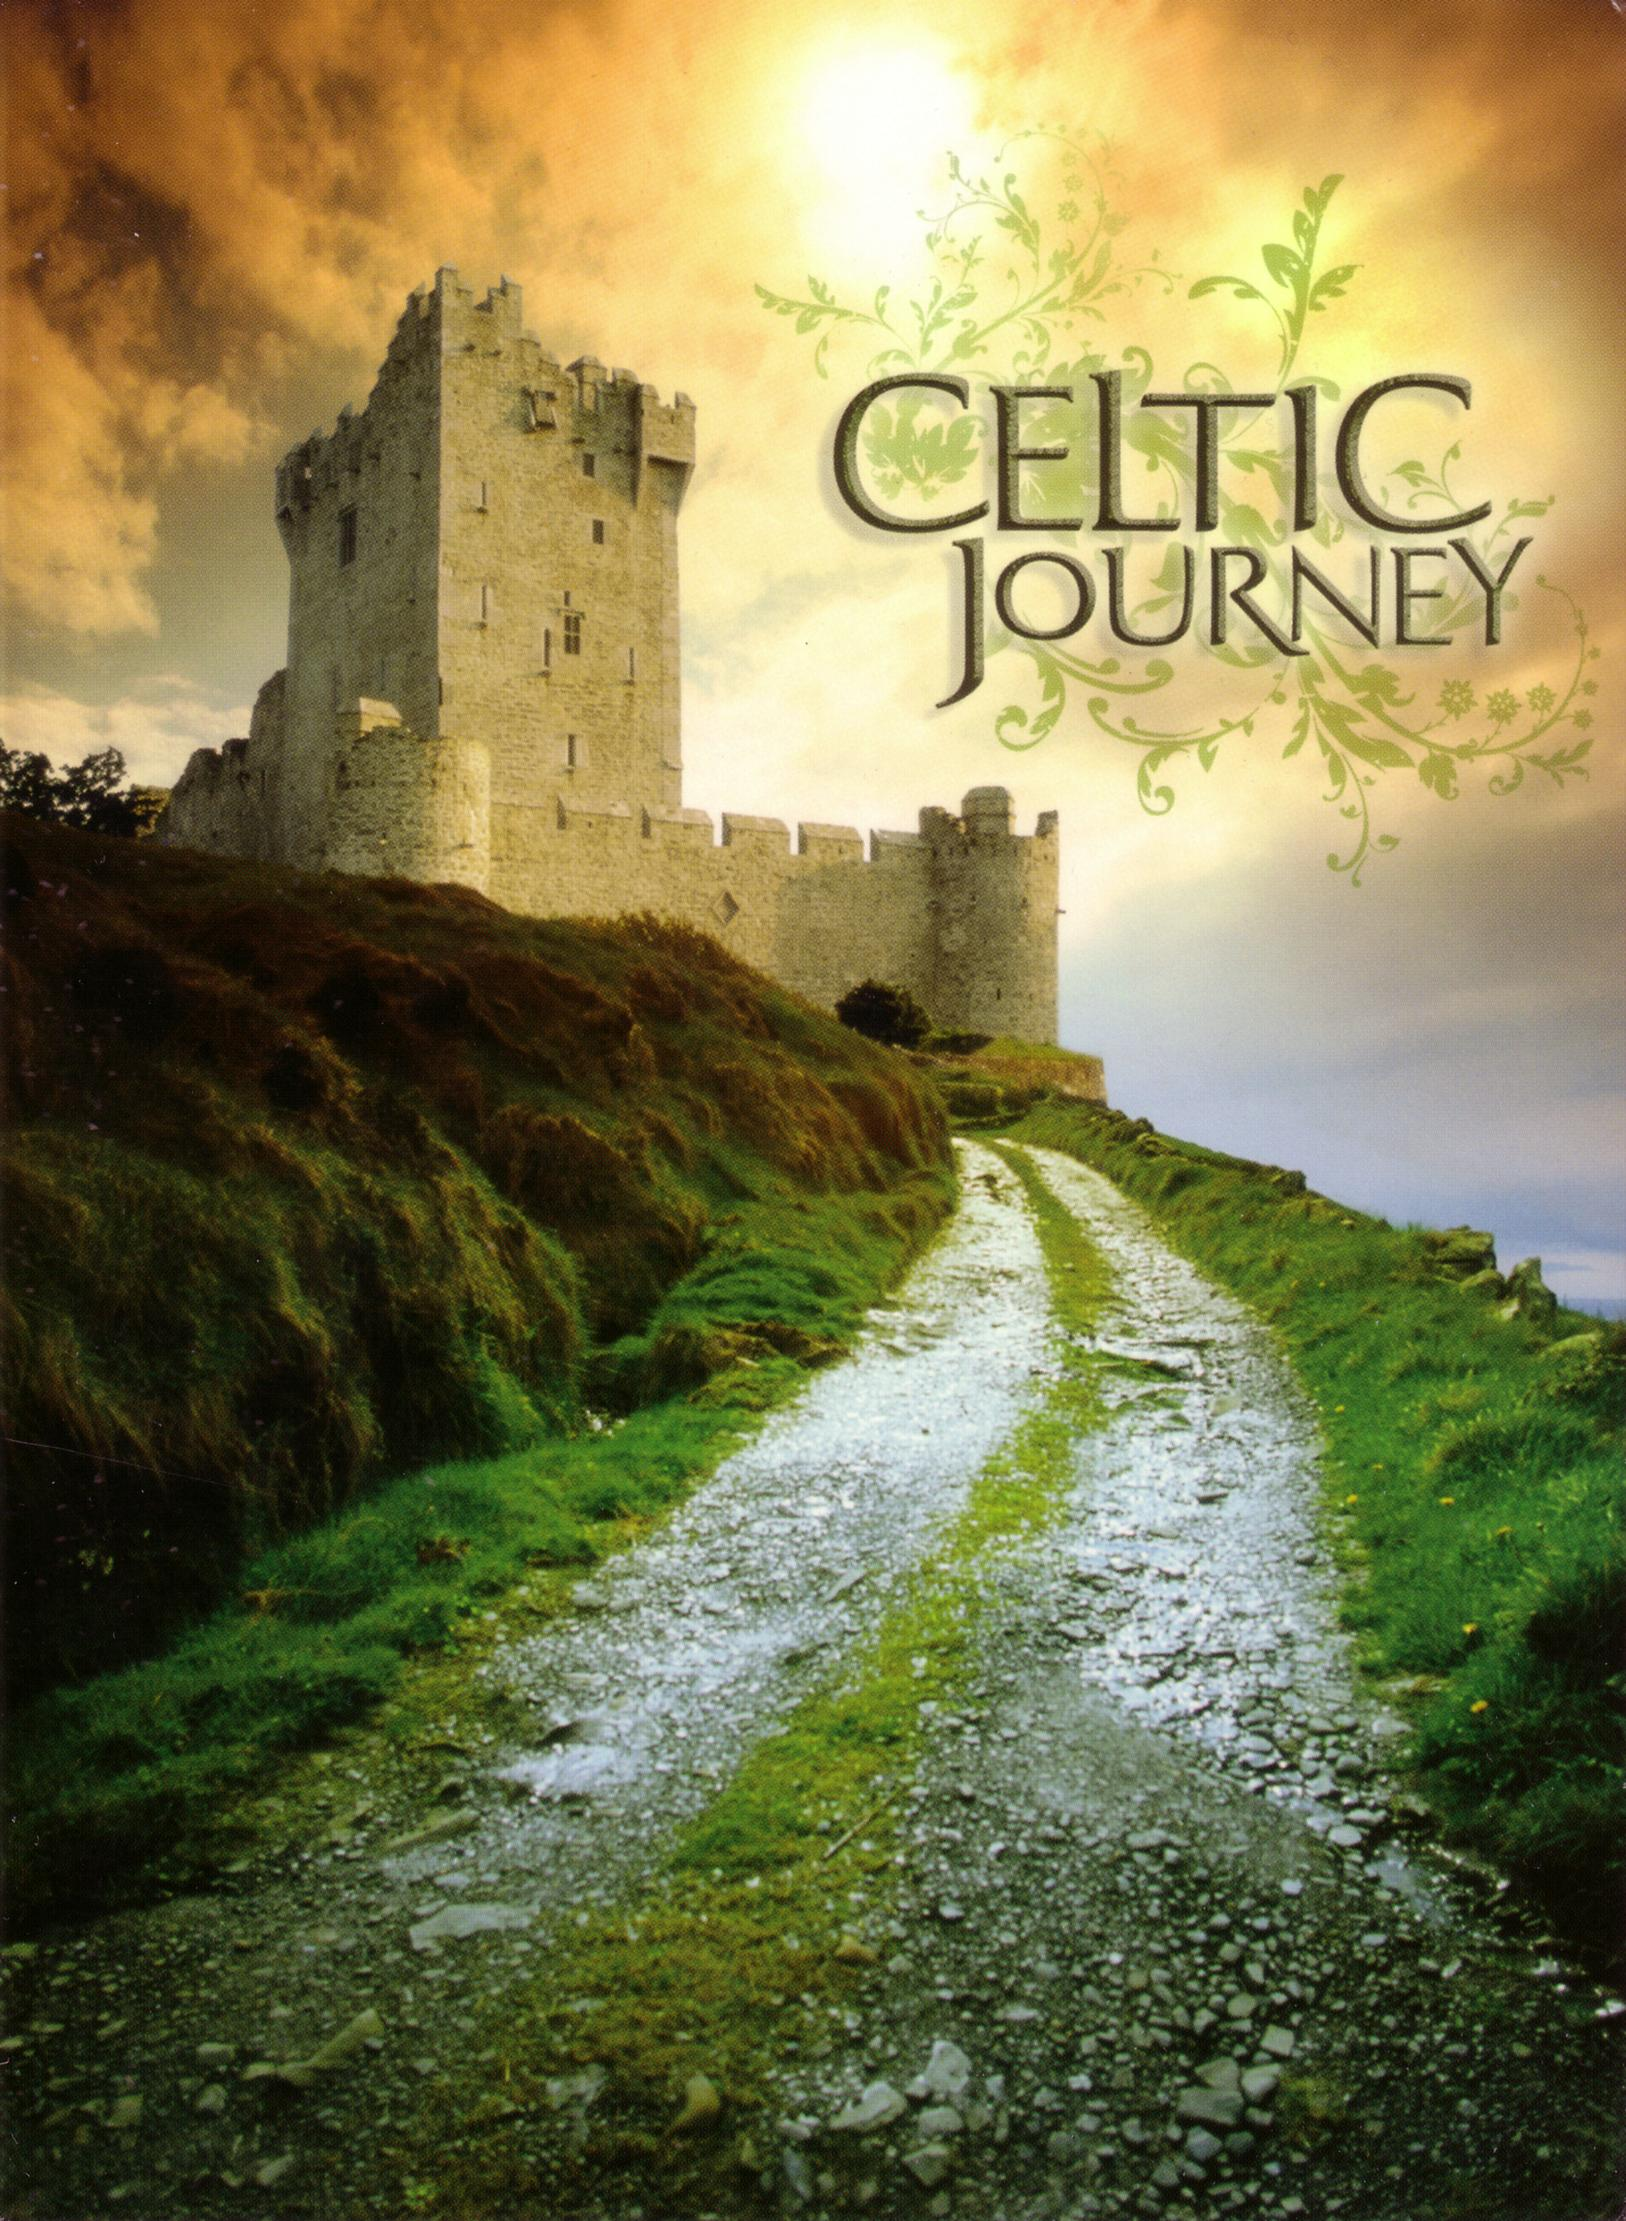 Celtic Journey  Disc 2  Return to Eire  Anne Bryony